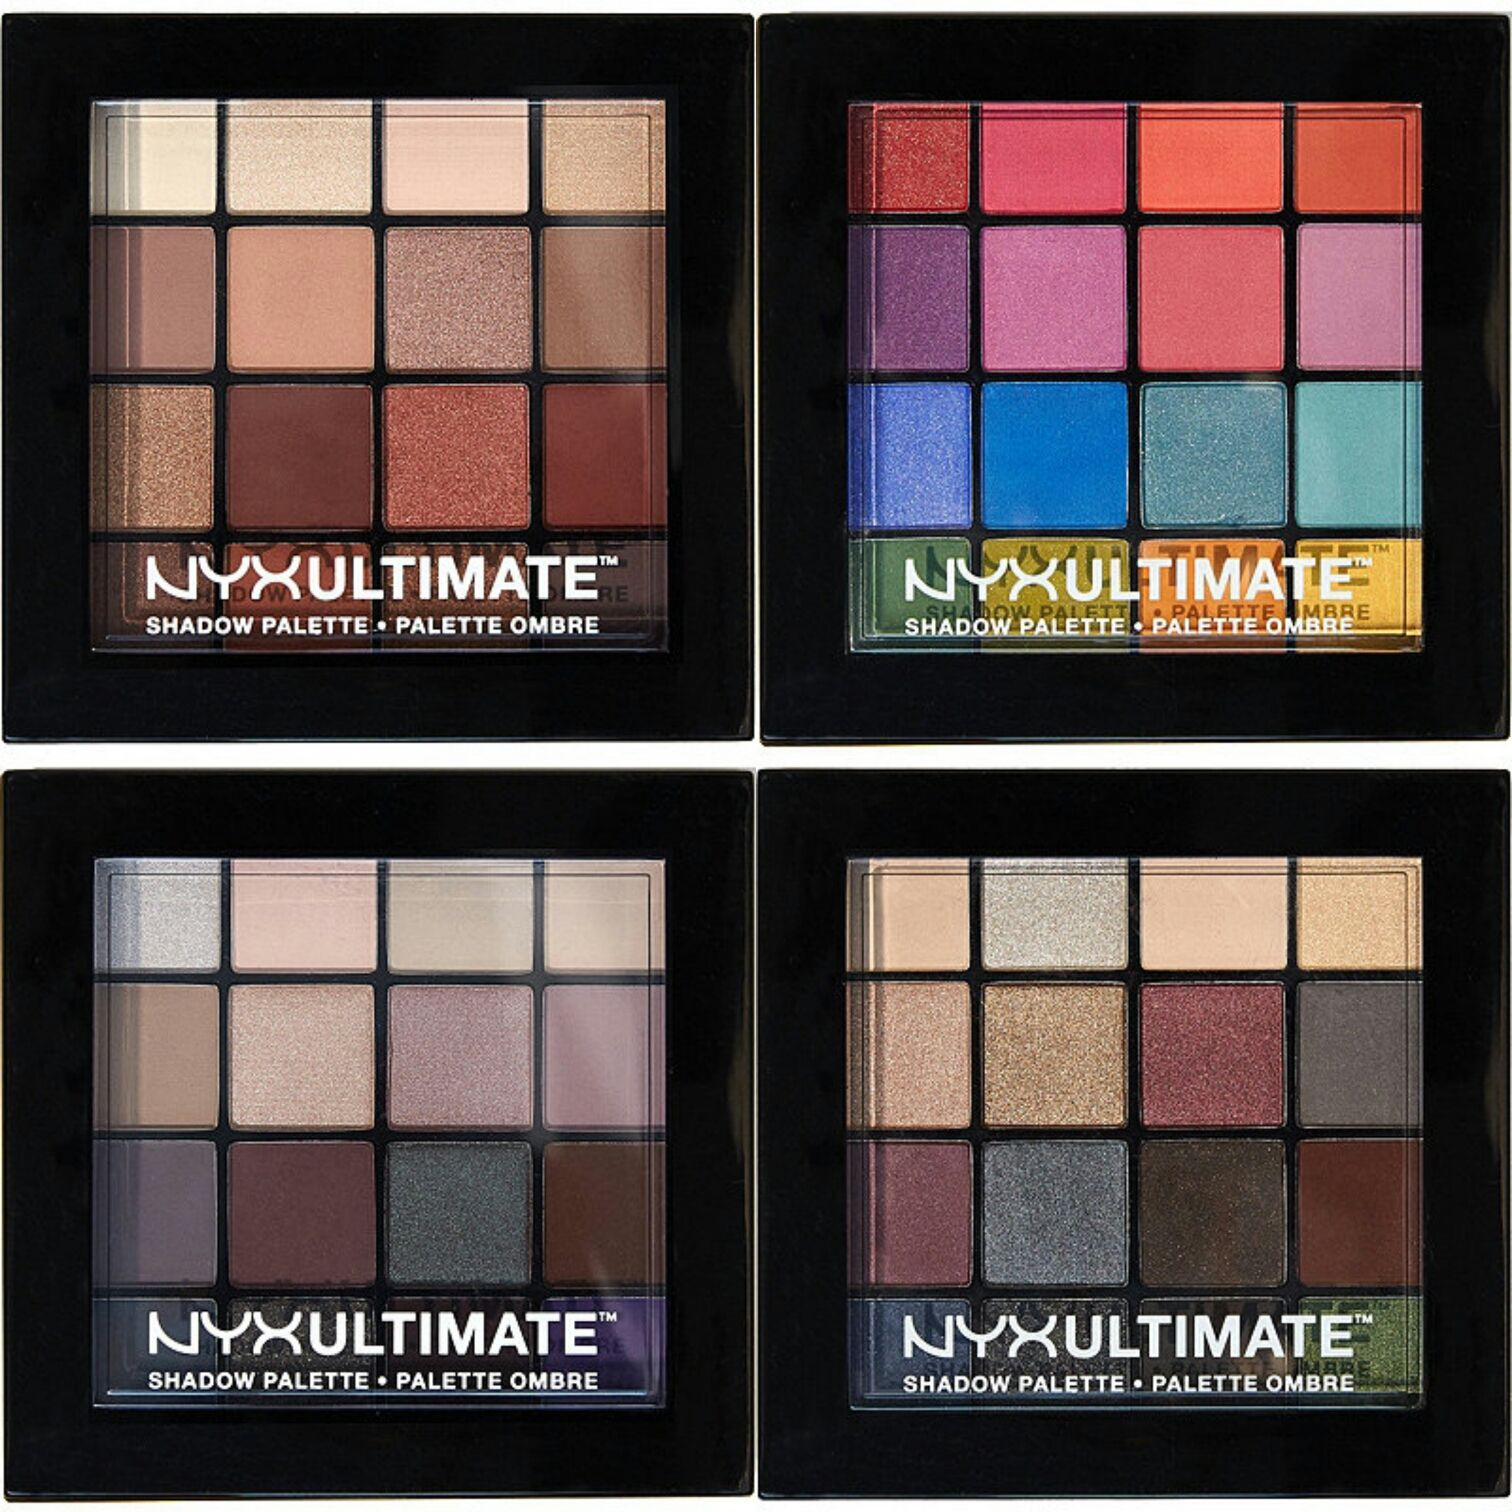 Nyx Ultimate Shadow Palette Swatches Nyx cosmetics